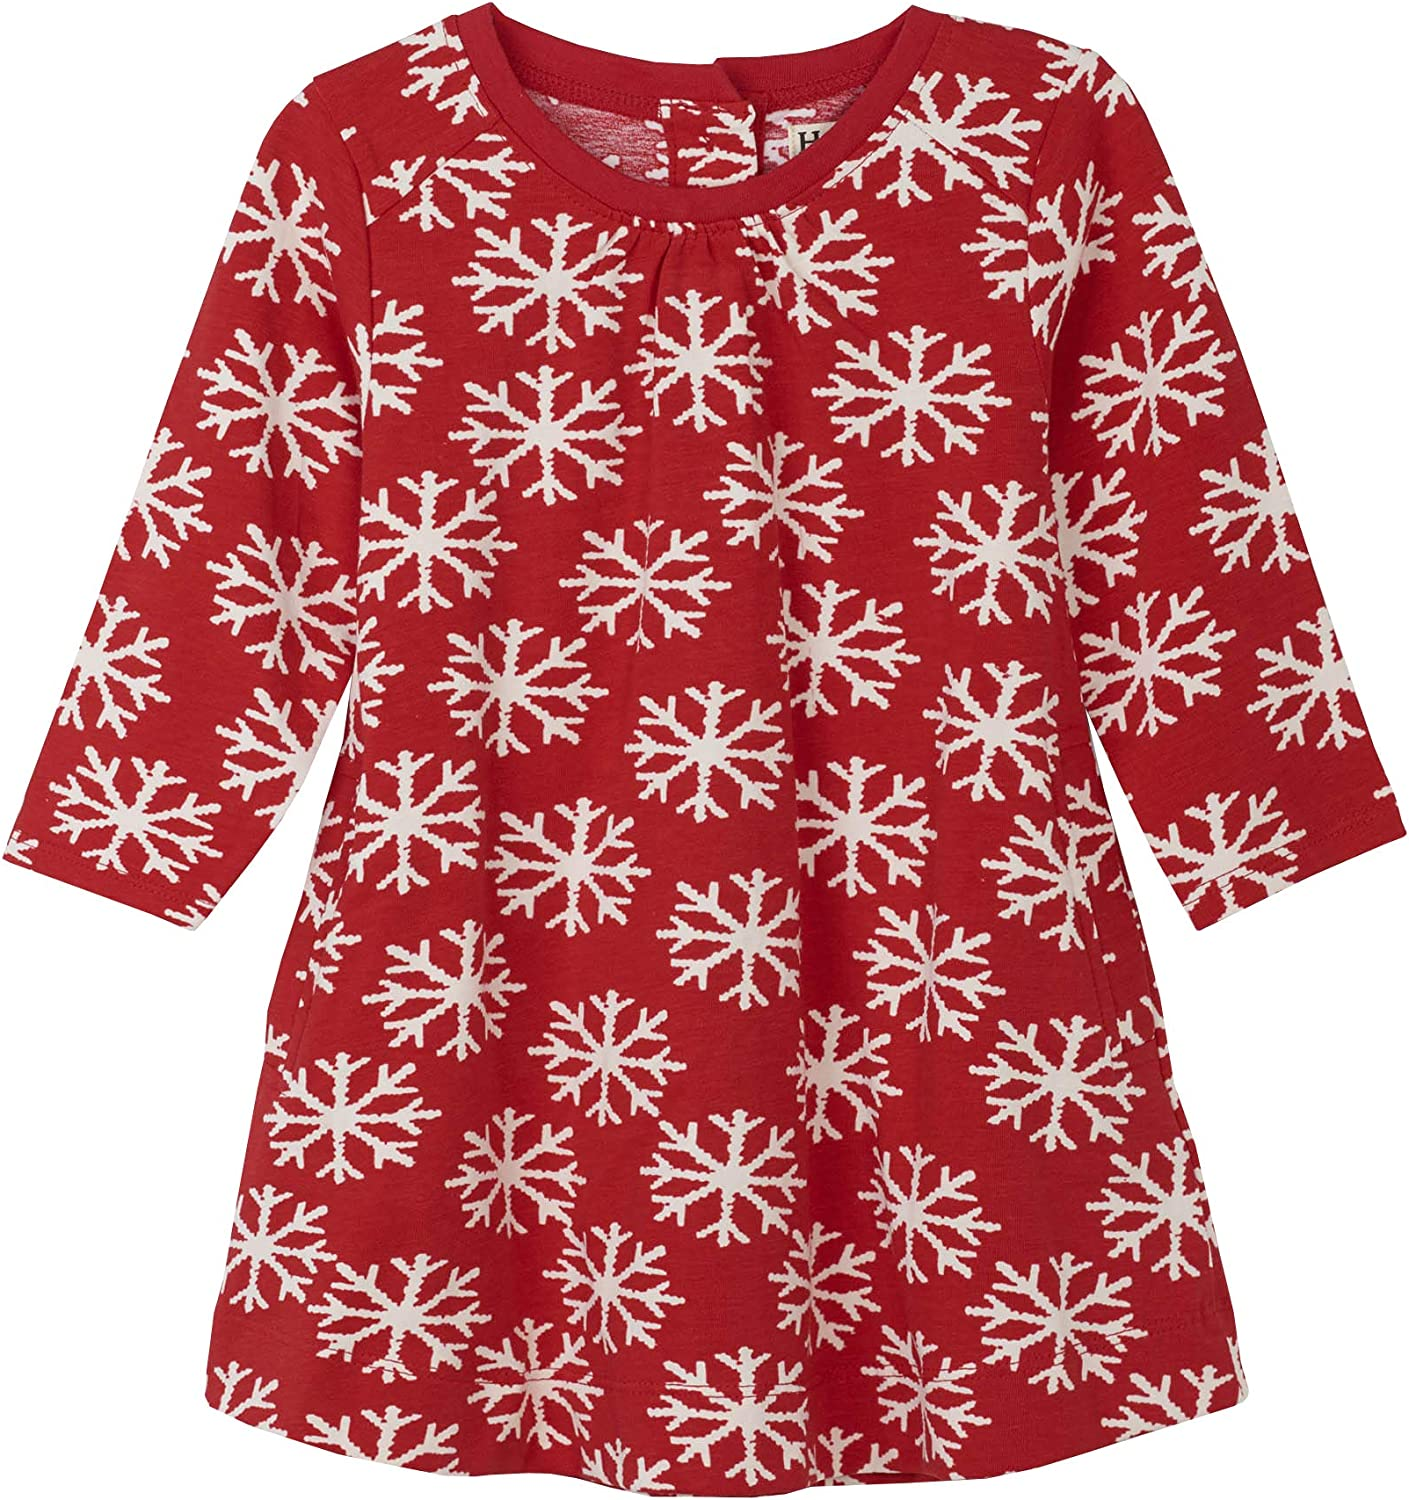 Falling Snowflakes Hatley Baby Swing Dress